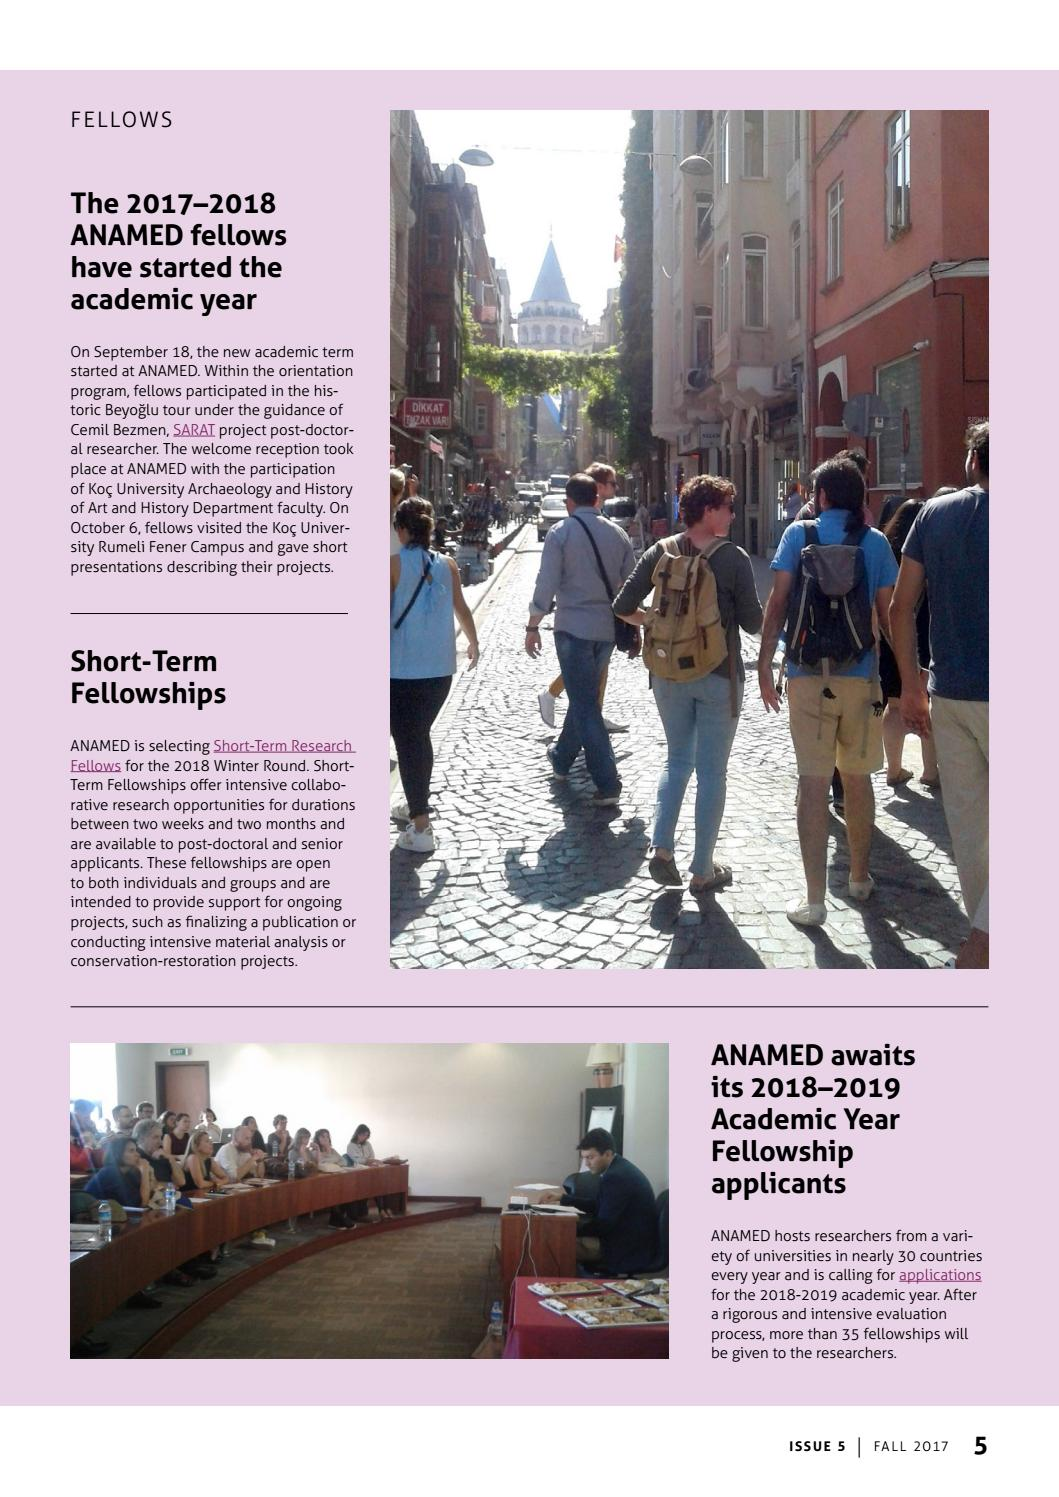 ANAMED Newsletter - Fall 2017 by ANAMED - issuu